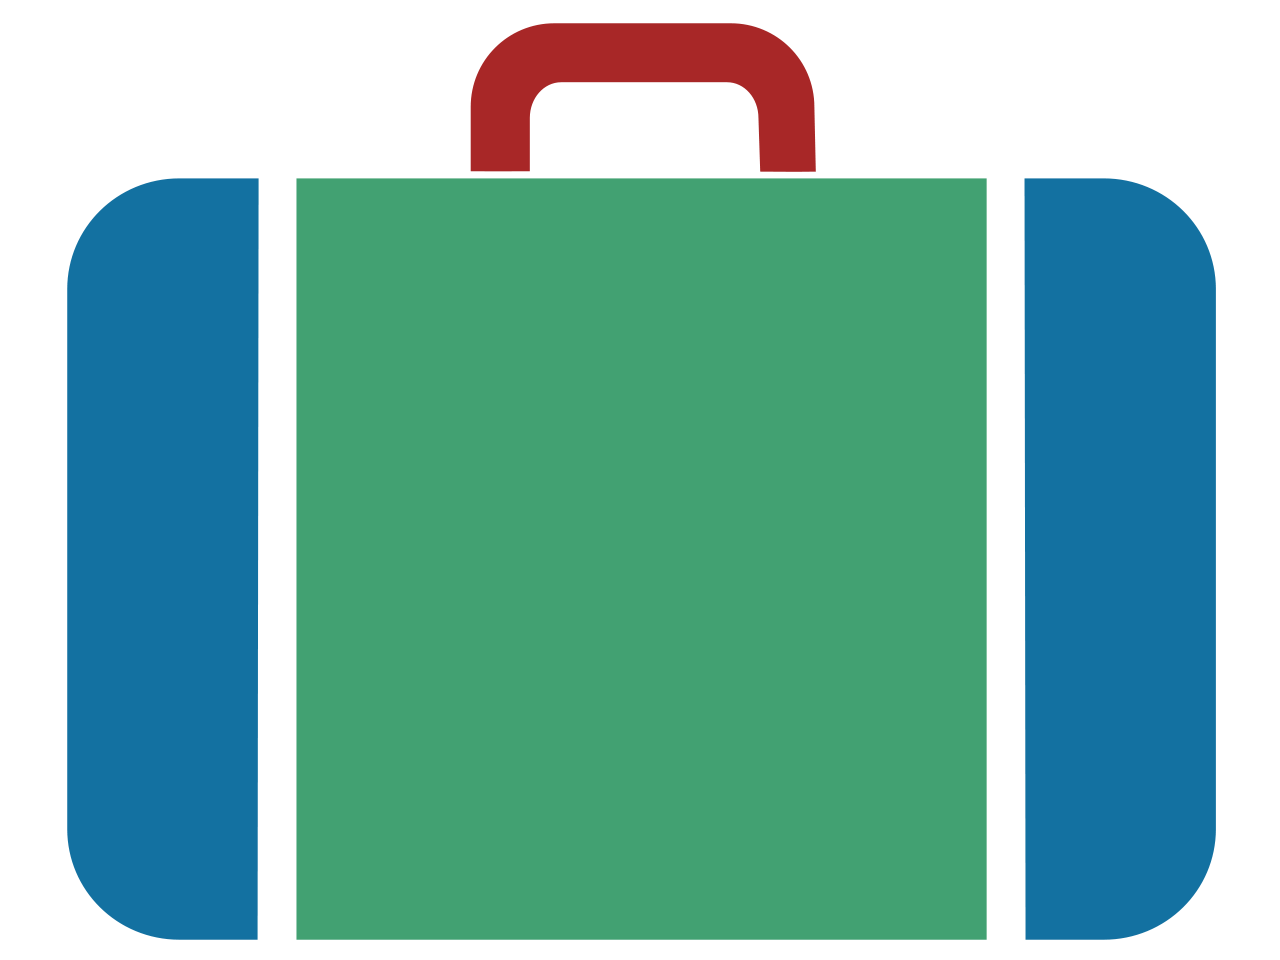 Briefcase clipart blue. Free luggage icon download